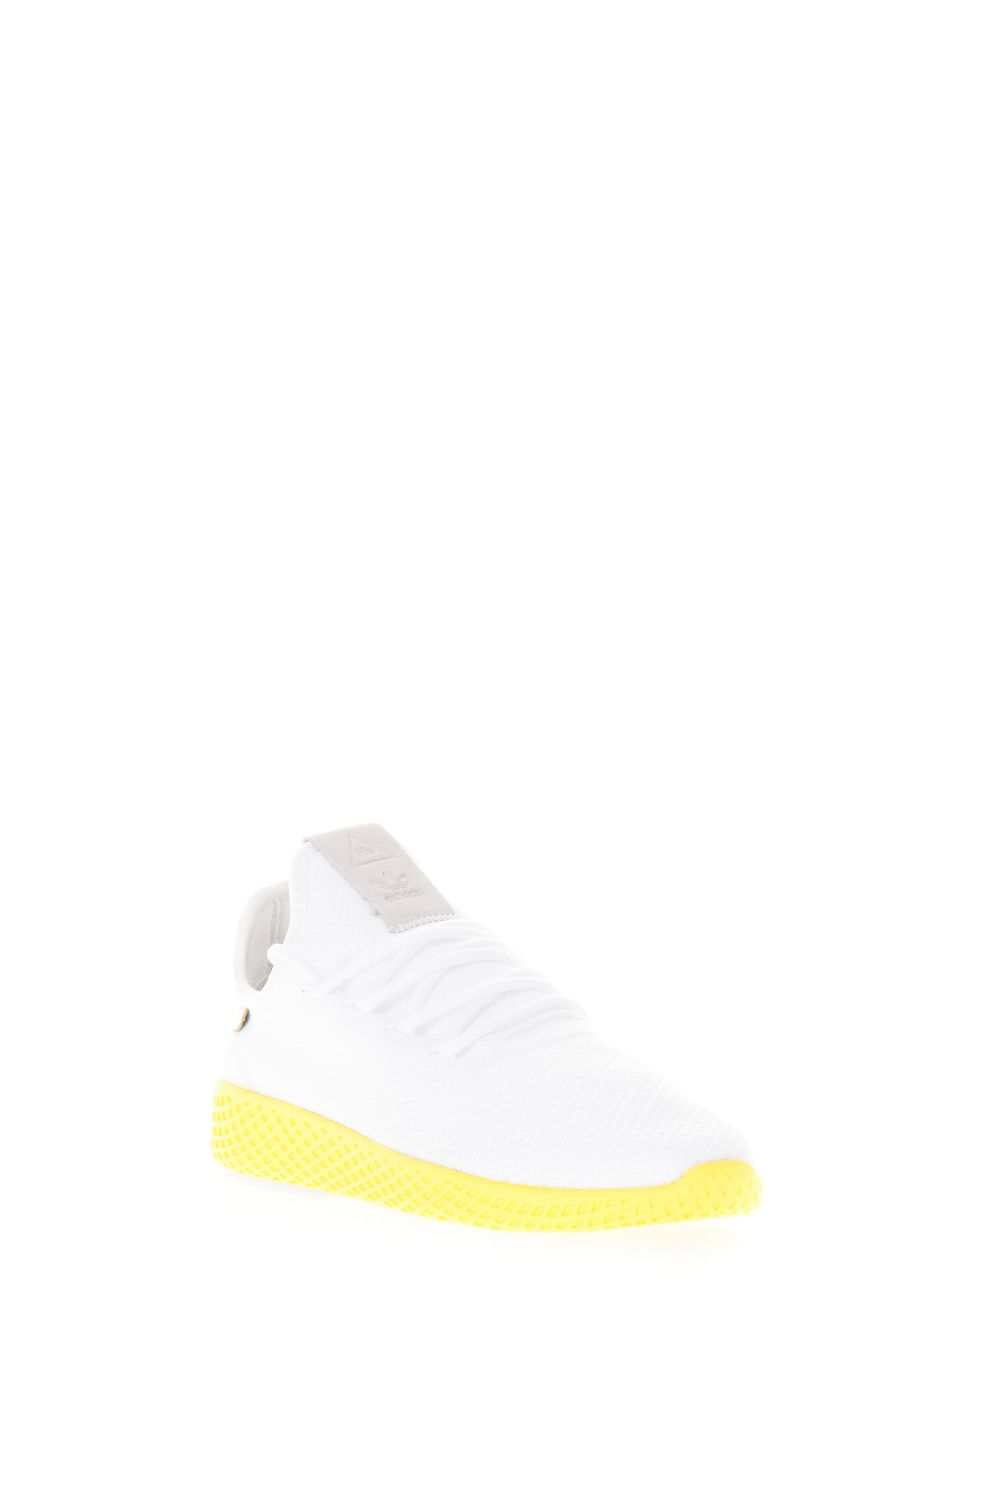 Adidas by Pharrell Williams Tennis Hu Primeknit Shoes